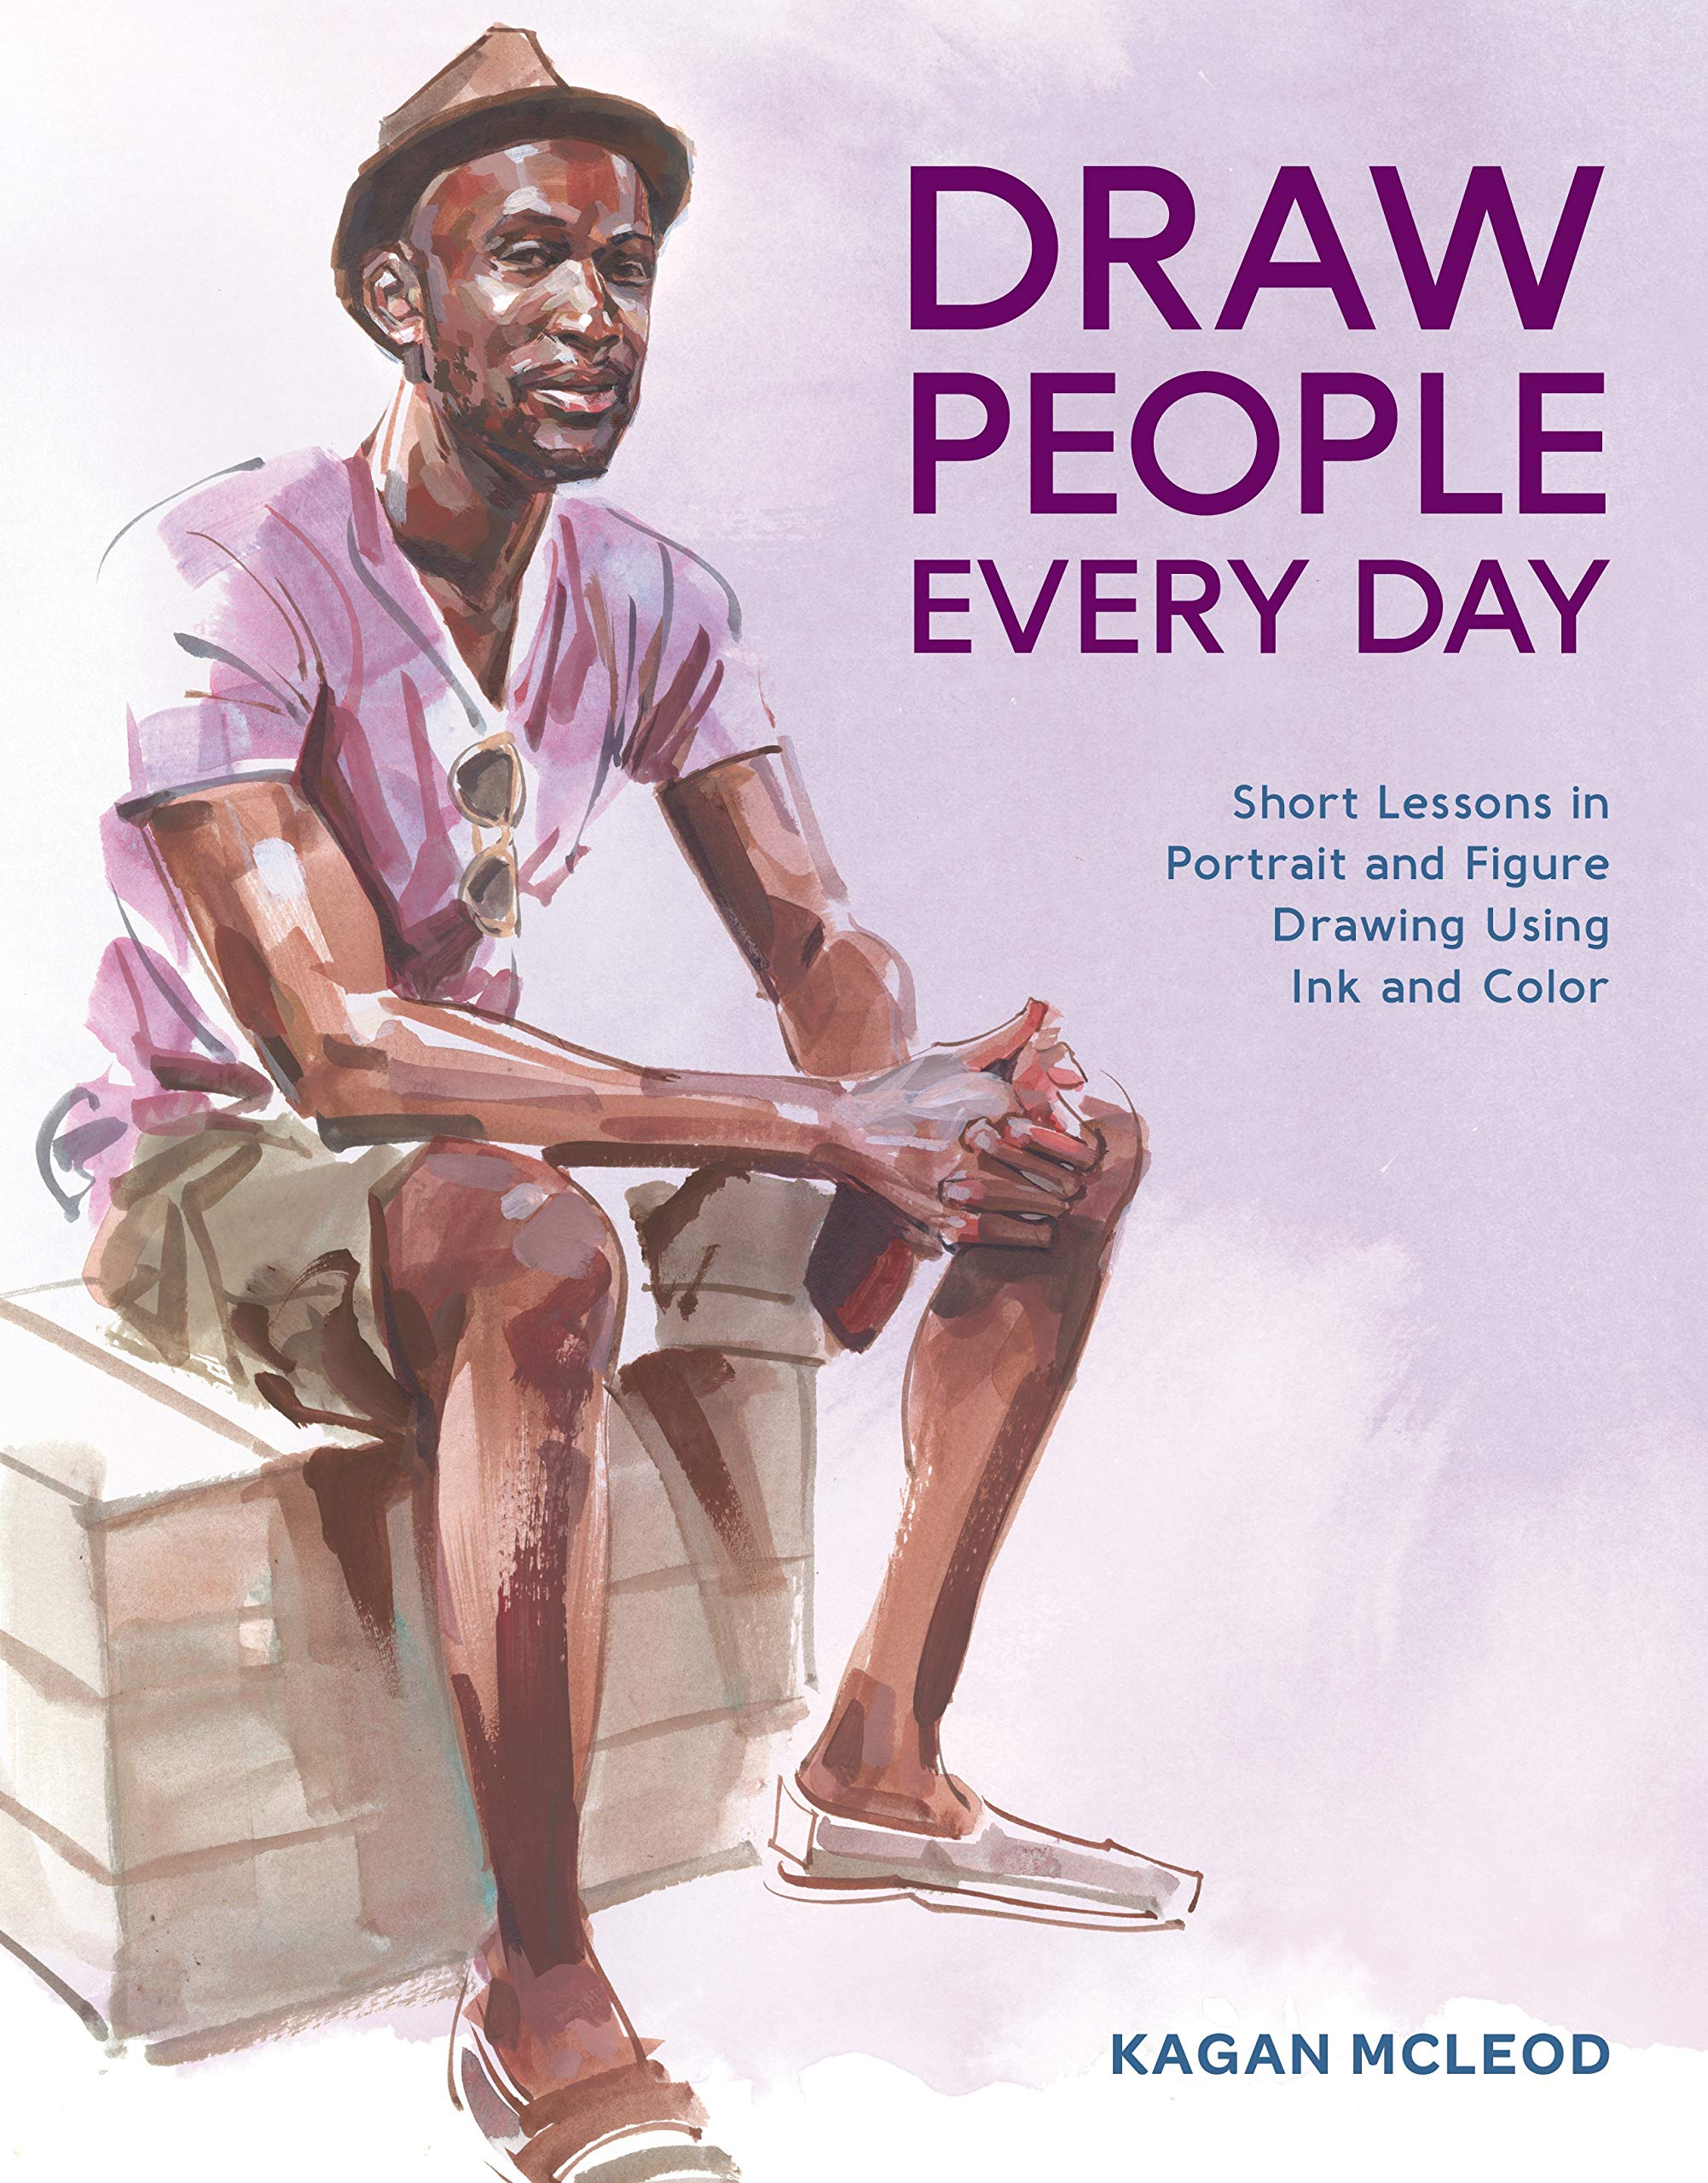 Draw People Every Day: Short Lessons in Portrait and Figure Drawing Using Ink and Color book cover